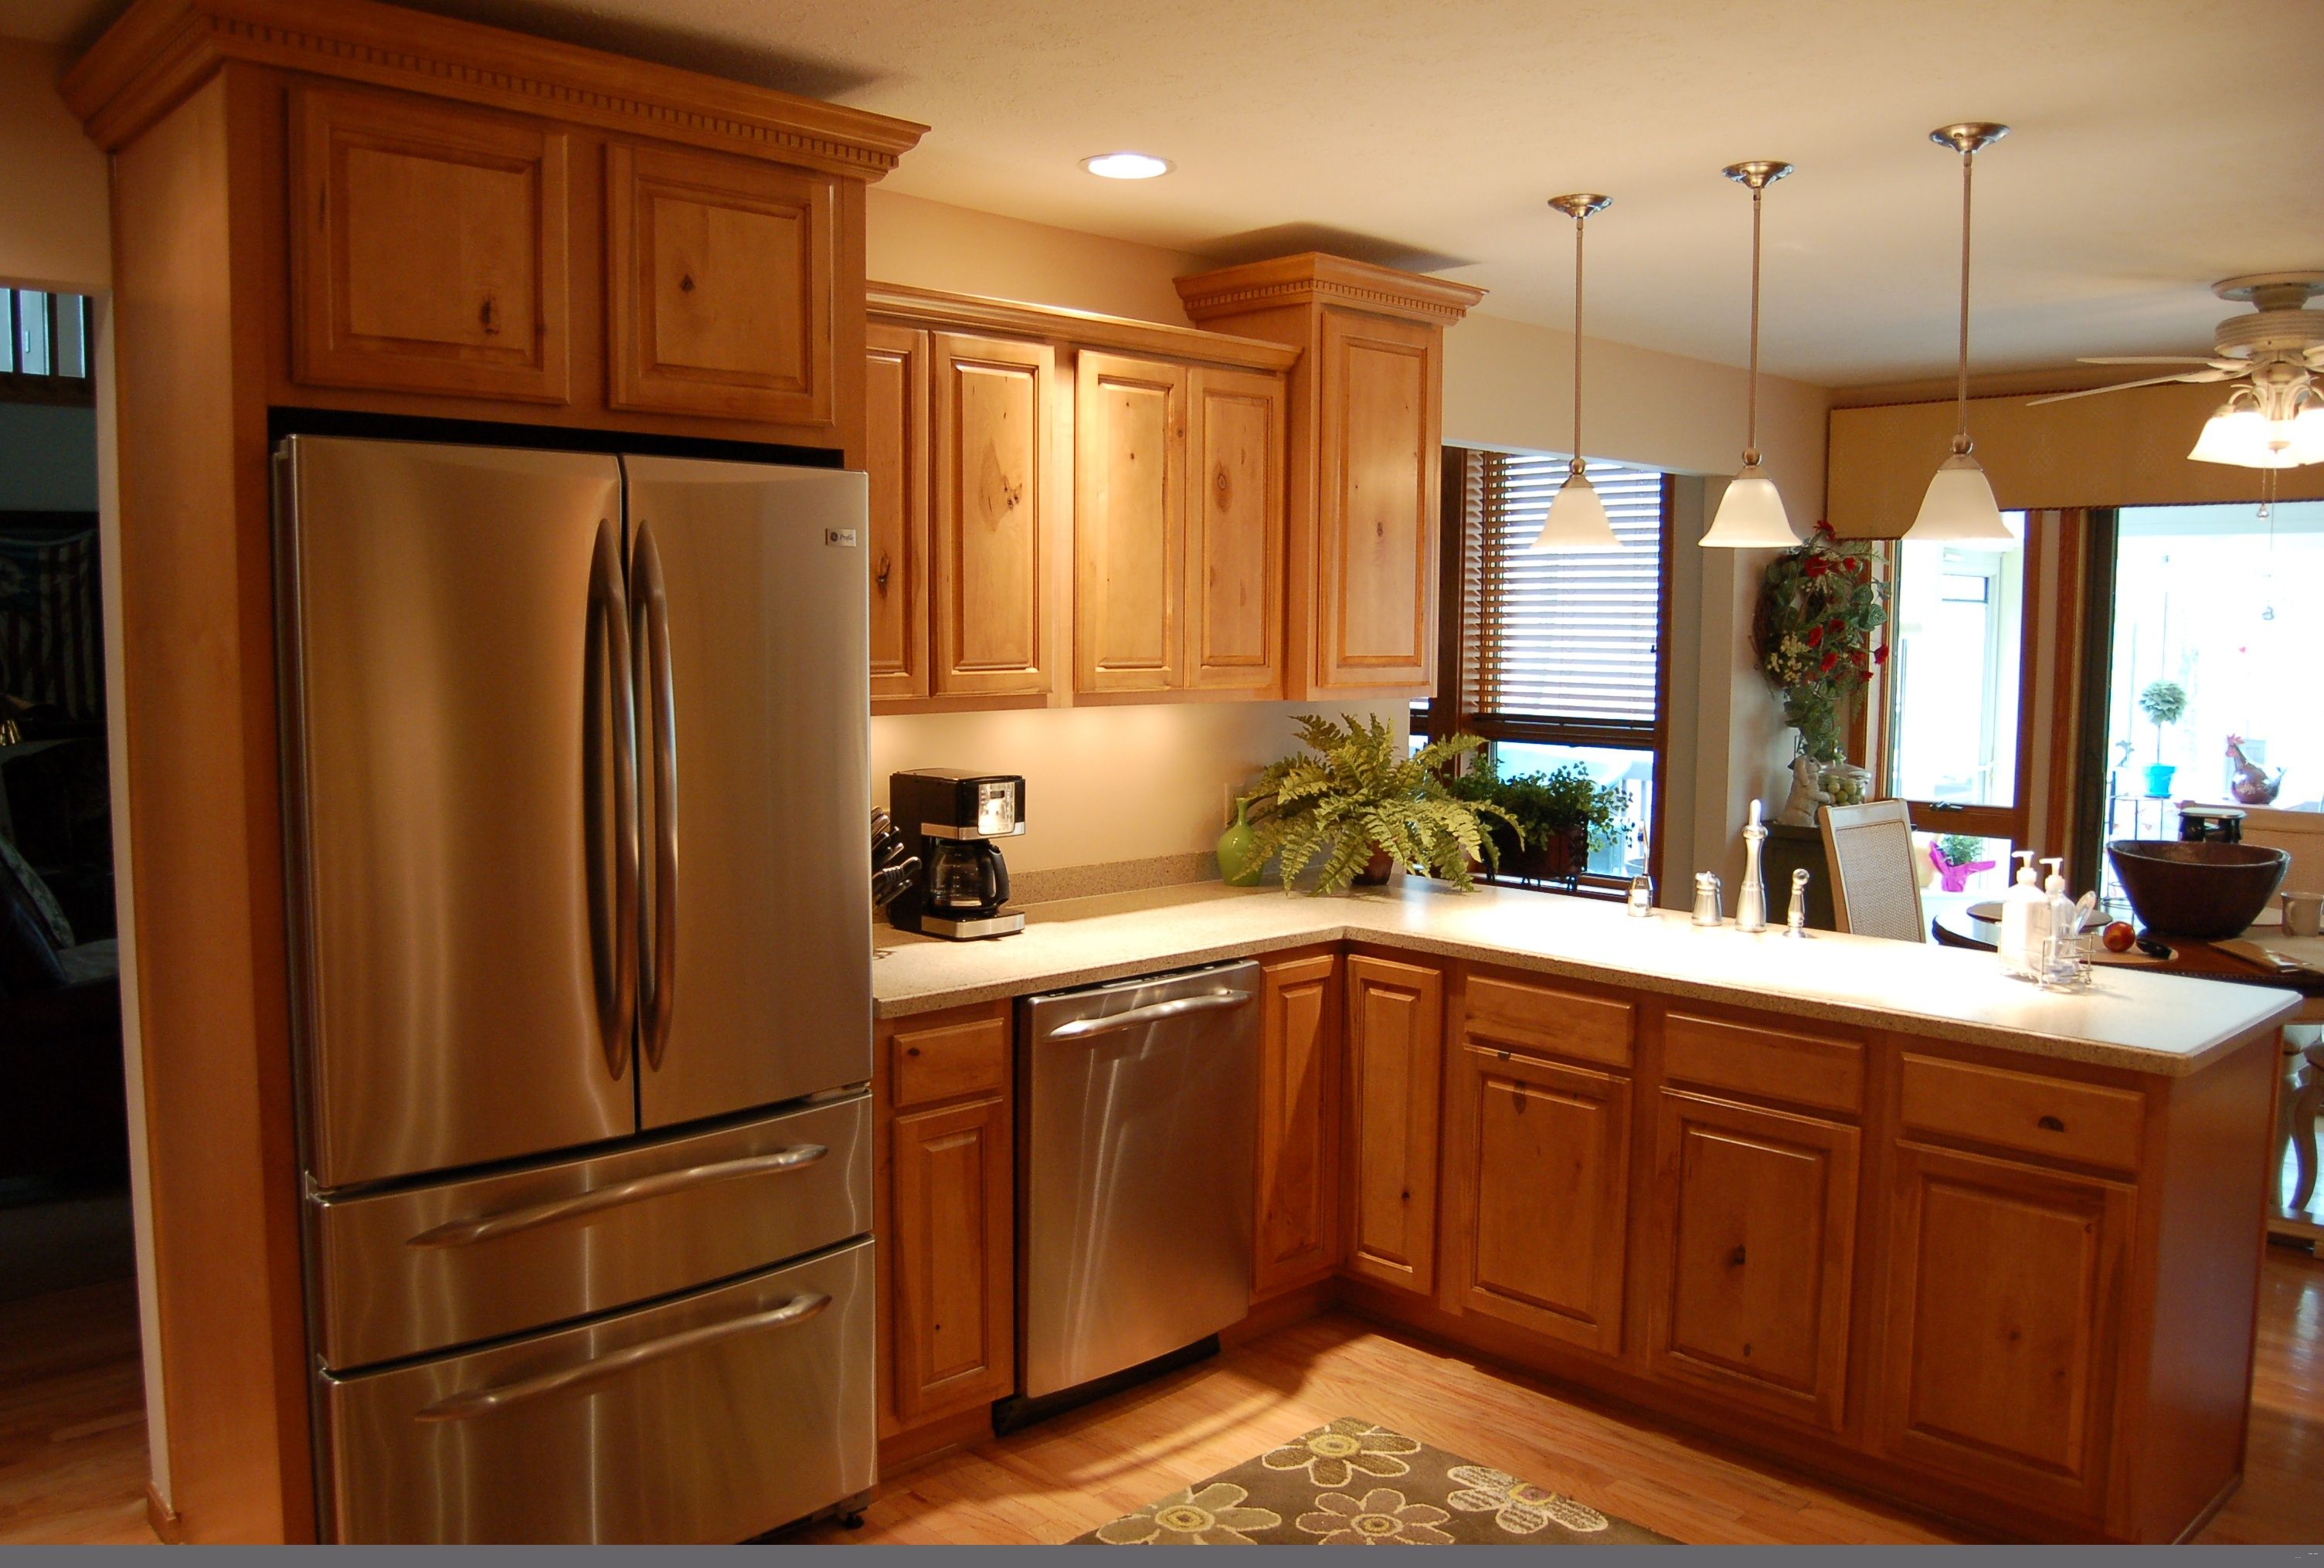 oak kitchen cabinets with white countertop | Ceiling Kitchen Light ...